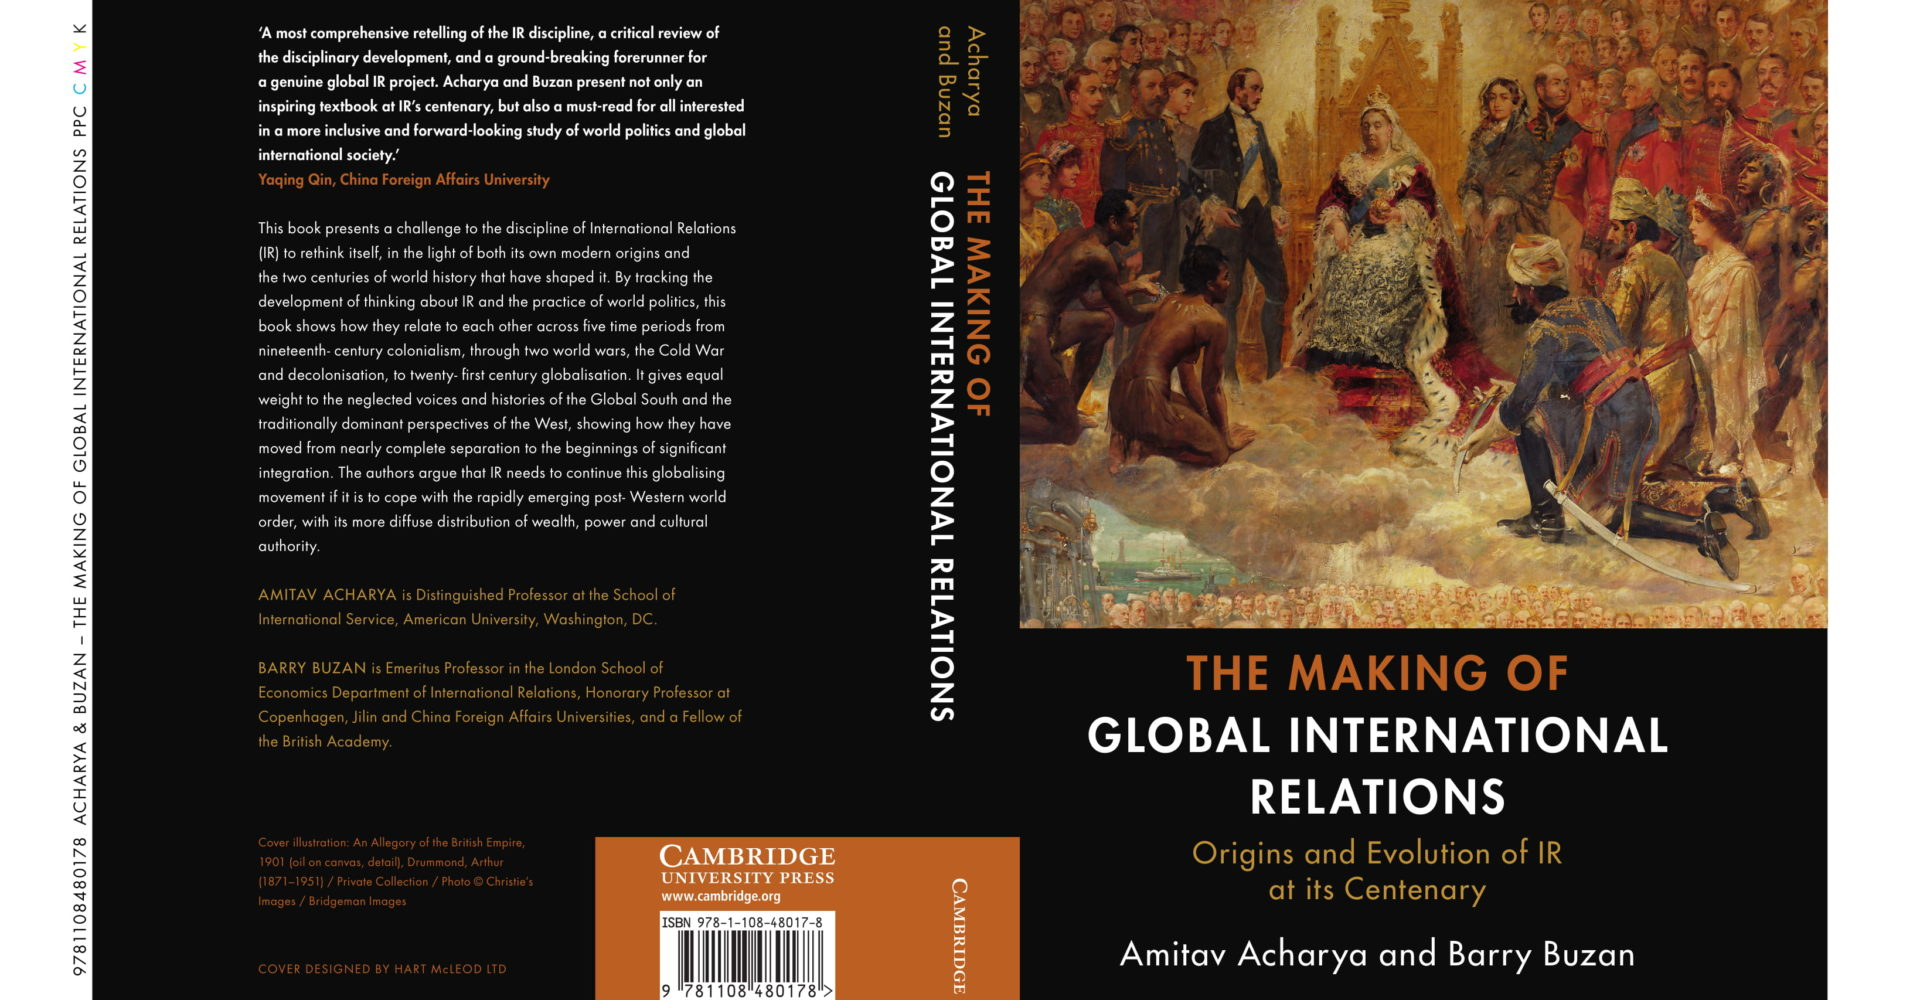 The Making of Global International Relations – CFPSS